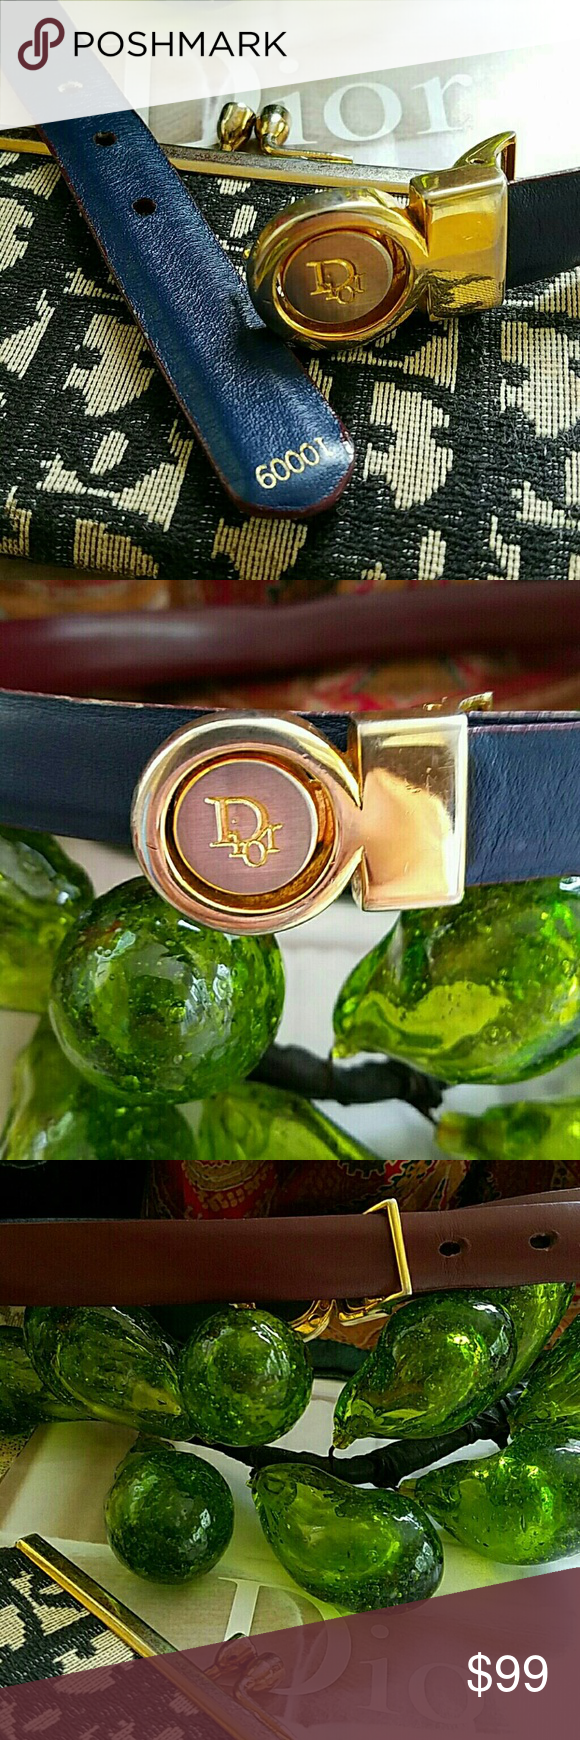 """VINTAGE REVERSABLE LEATHER DIOR BELT GORGEOUS RARE REVERSABLE DIOR VINTAGE BELT DIOR GOLD AND SILVER IDENTIFYING PEGGED BUCKLE, NAVY AND BORDEAUX LEATHER  34"""" TOTAL LENGTH PEG 28"""" AT FIRST NOTCH UP TO 32"""" .75 WIDE BUCKLE IS 1""""   GOLD EMBOSSED NUMERICAL IDENTITY. BUCKLE HAS SLIGHT WEAR AND SCRATCHING, LEATHER IN EXCELLENT CONDITION MINIR WEAR AT LEG HOLES Dior Accessories Belts"""